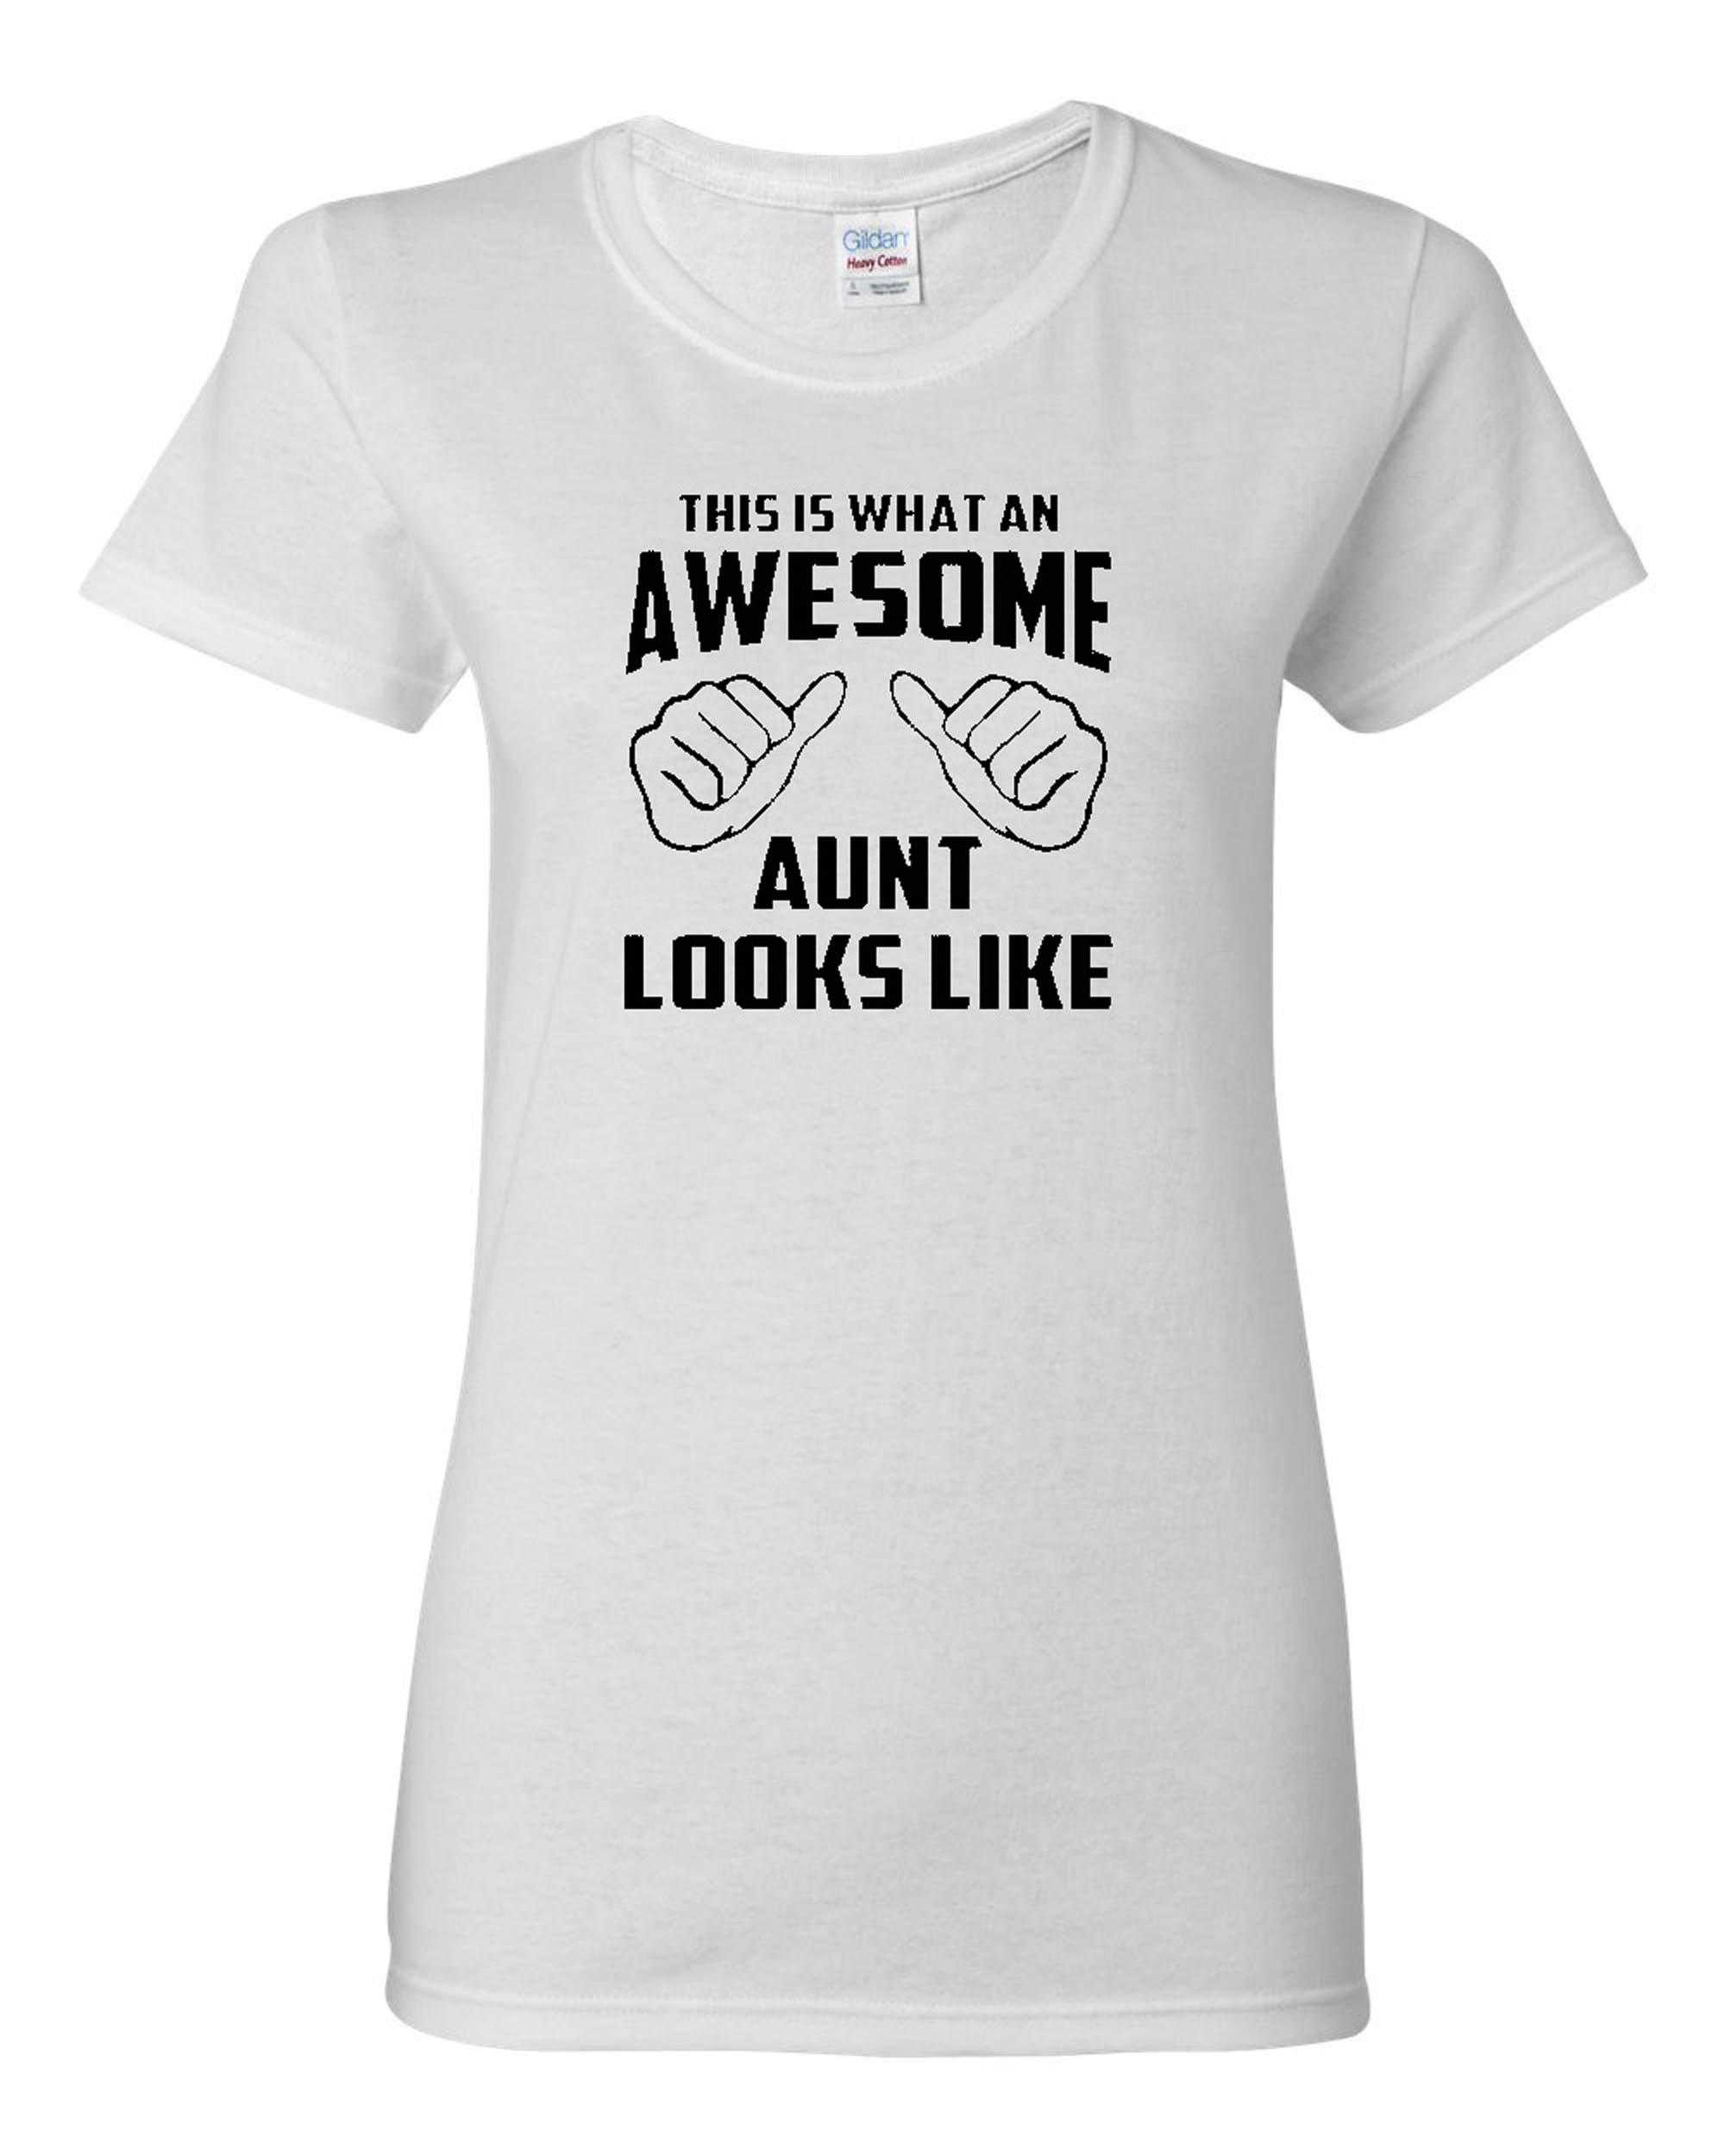 Ladies This Is What An Awesome Aunt Looks Like T-Shirt Tee